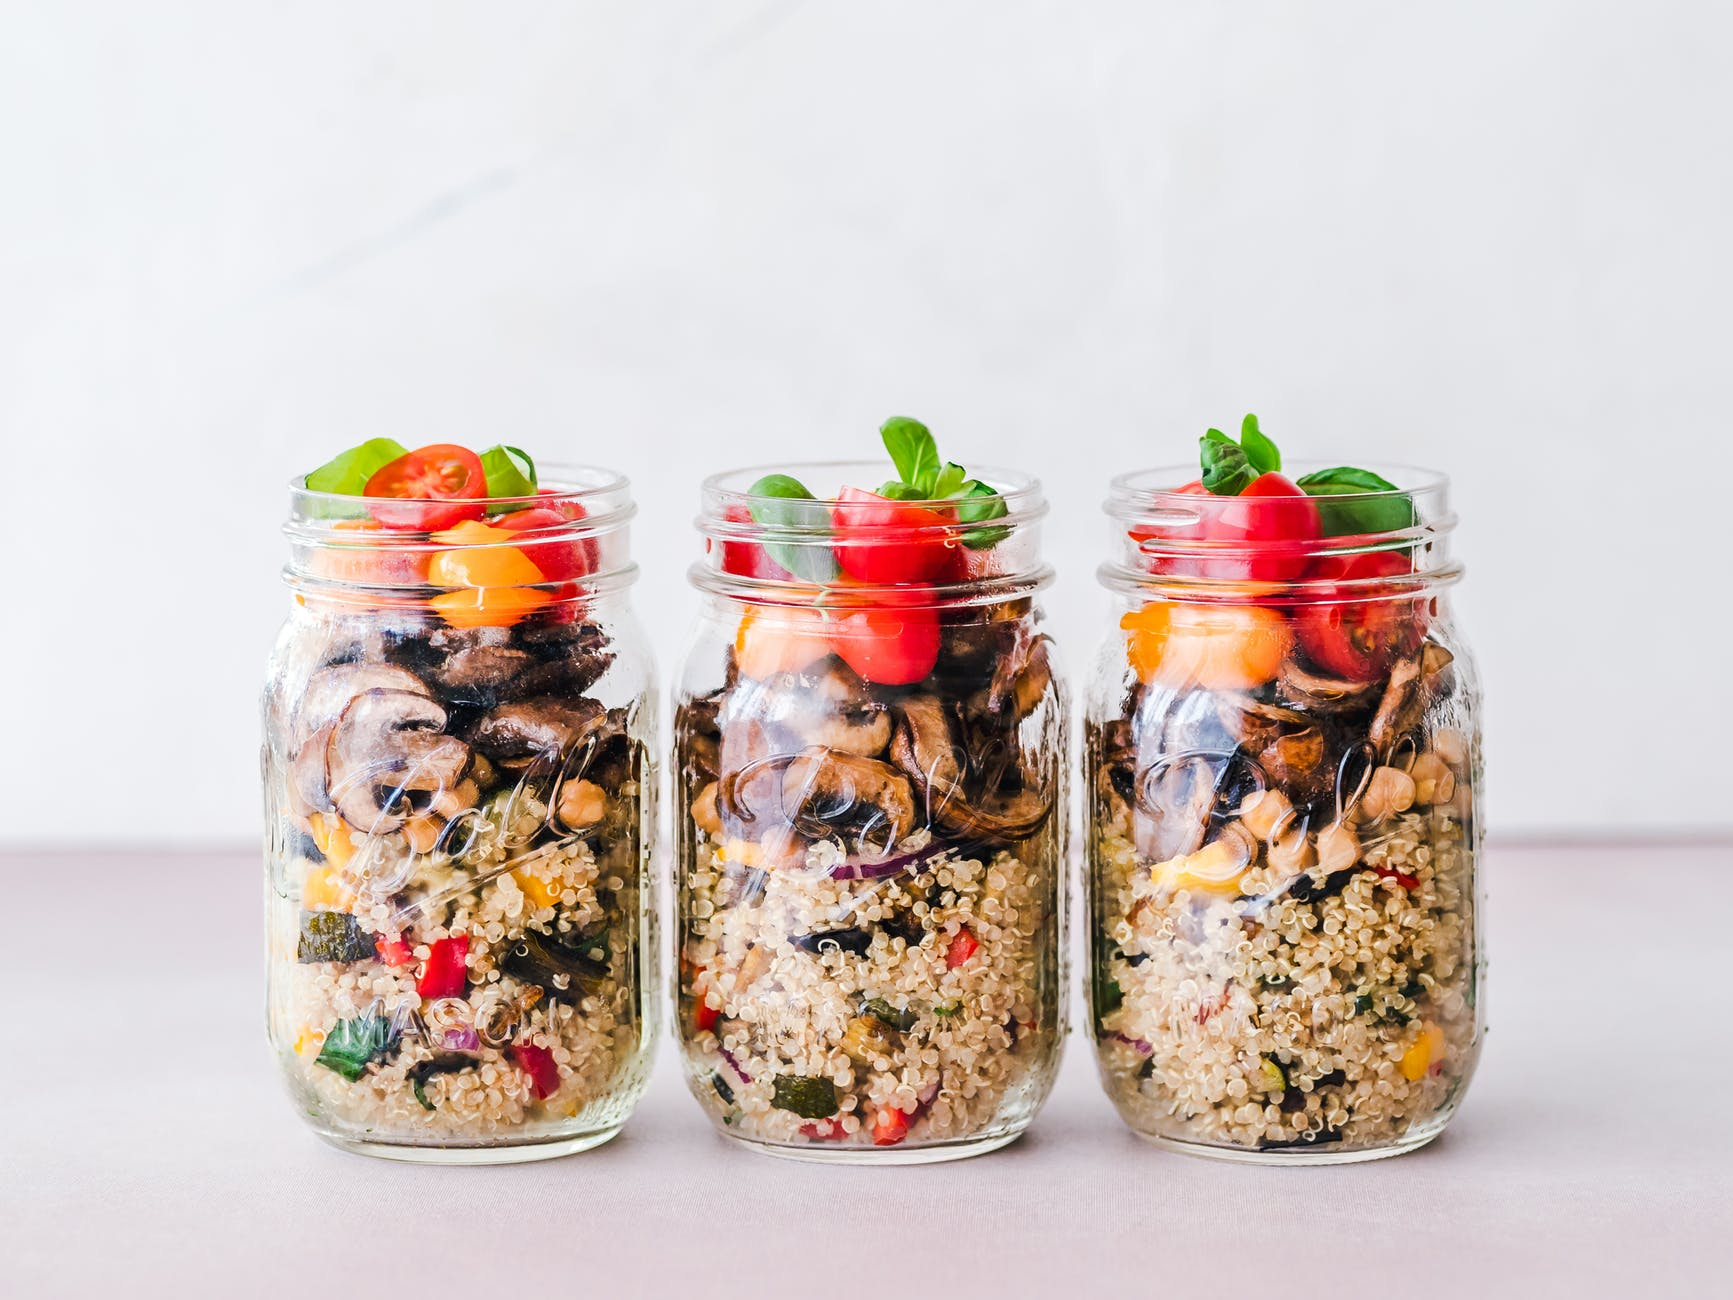 Three mason jars filled with a mixture of quinoa and colorful vegetables show how healthy and easy make-ahead lunches can be.